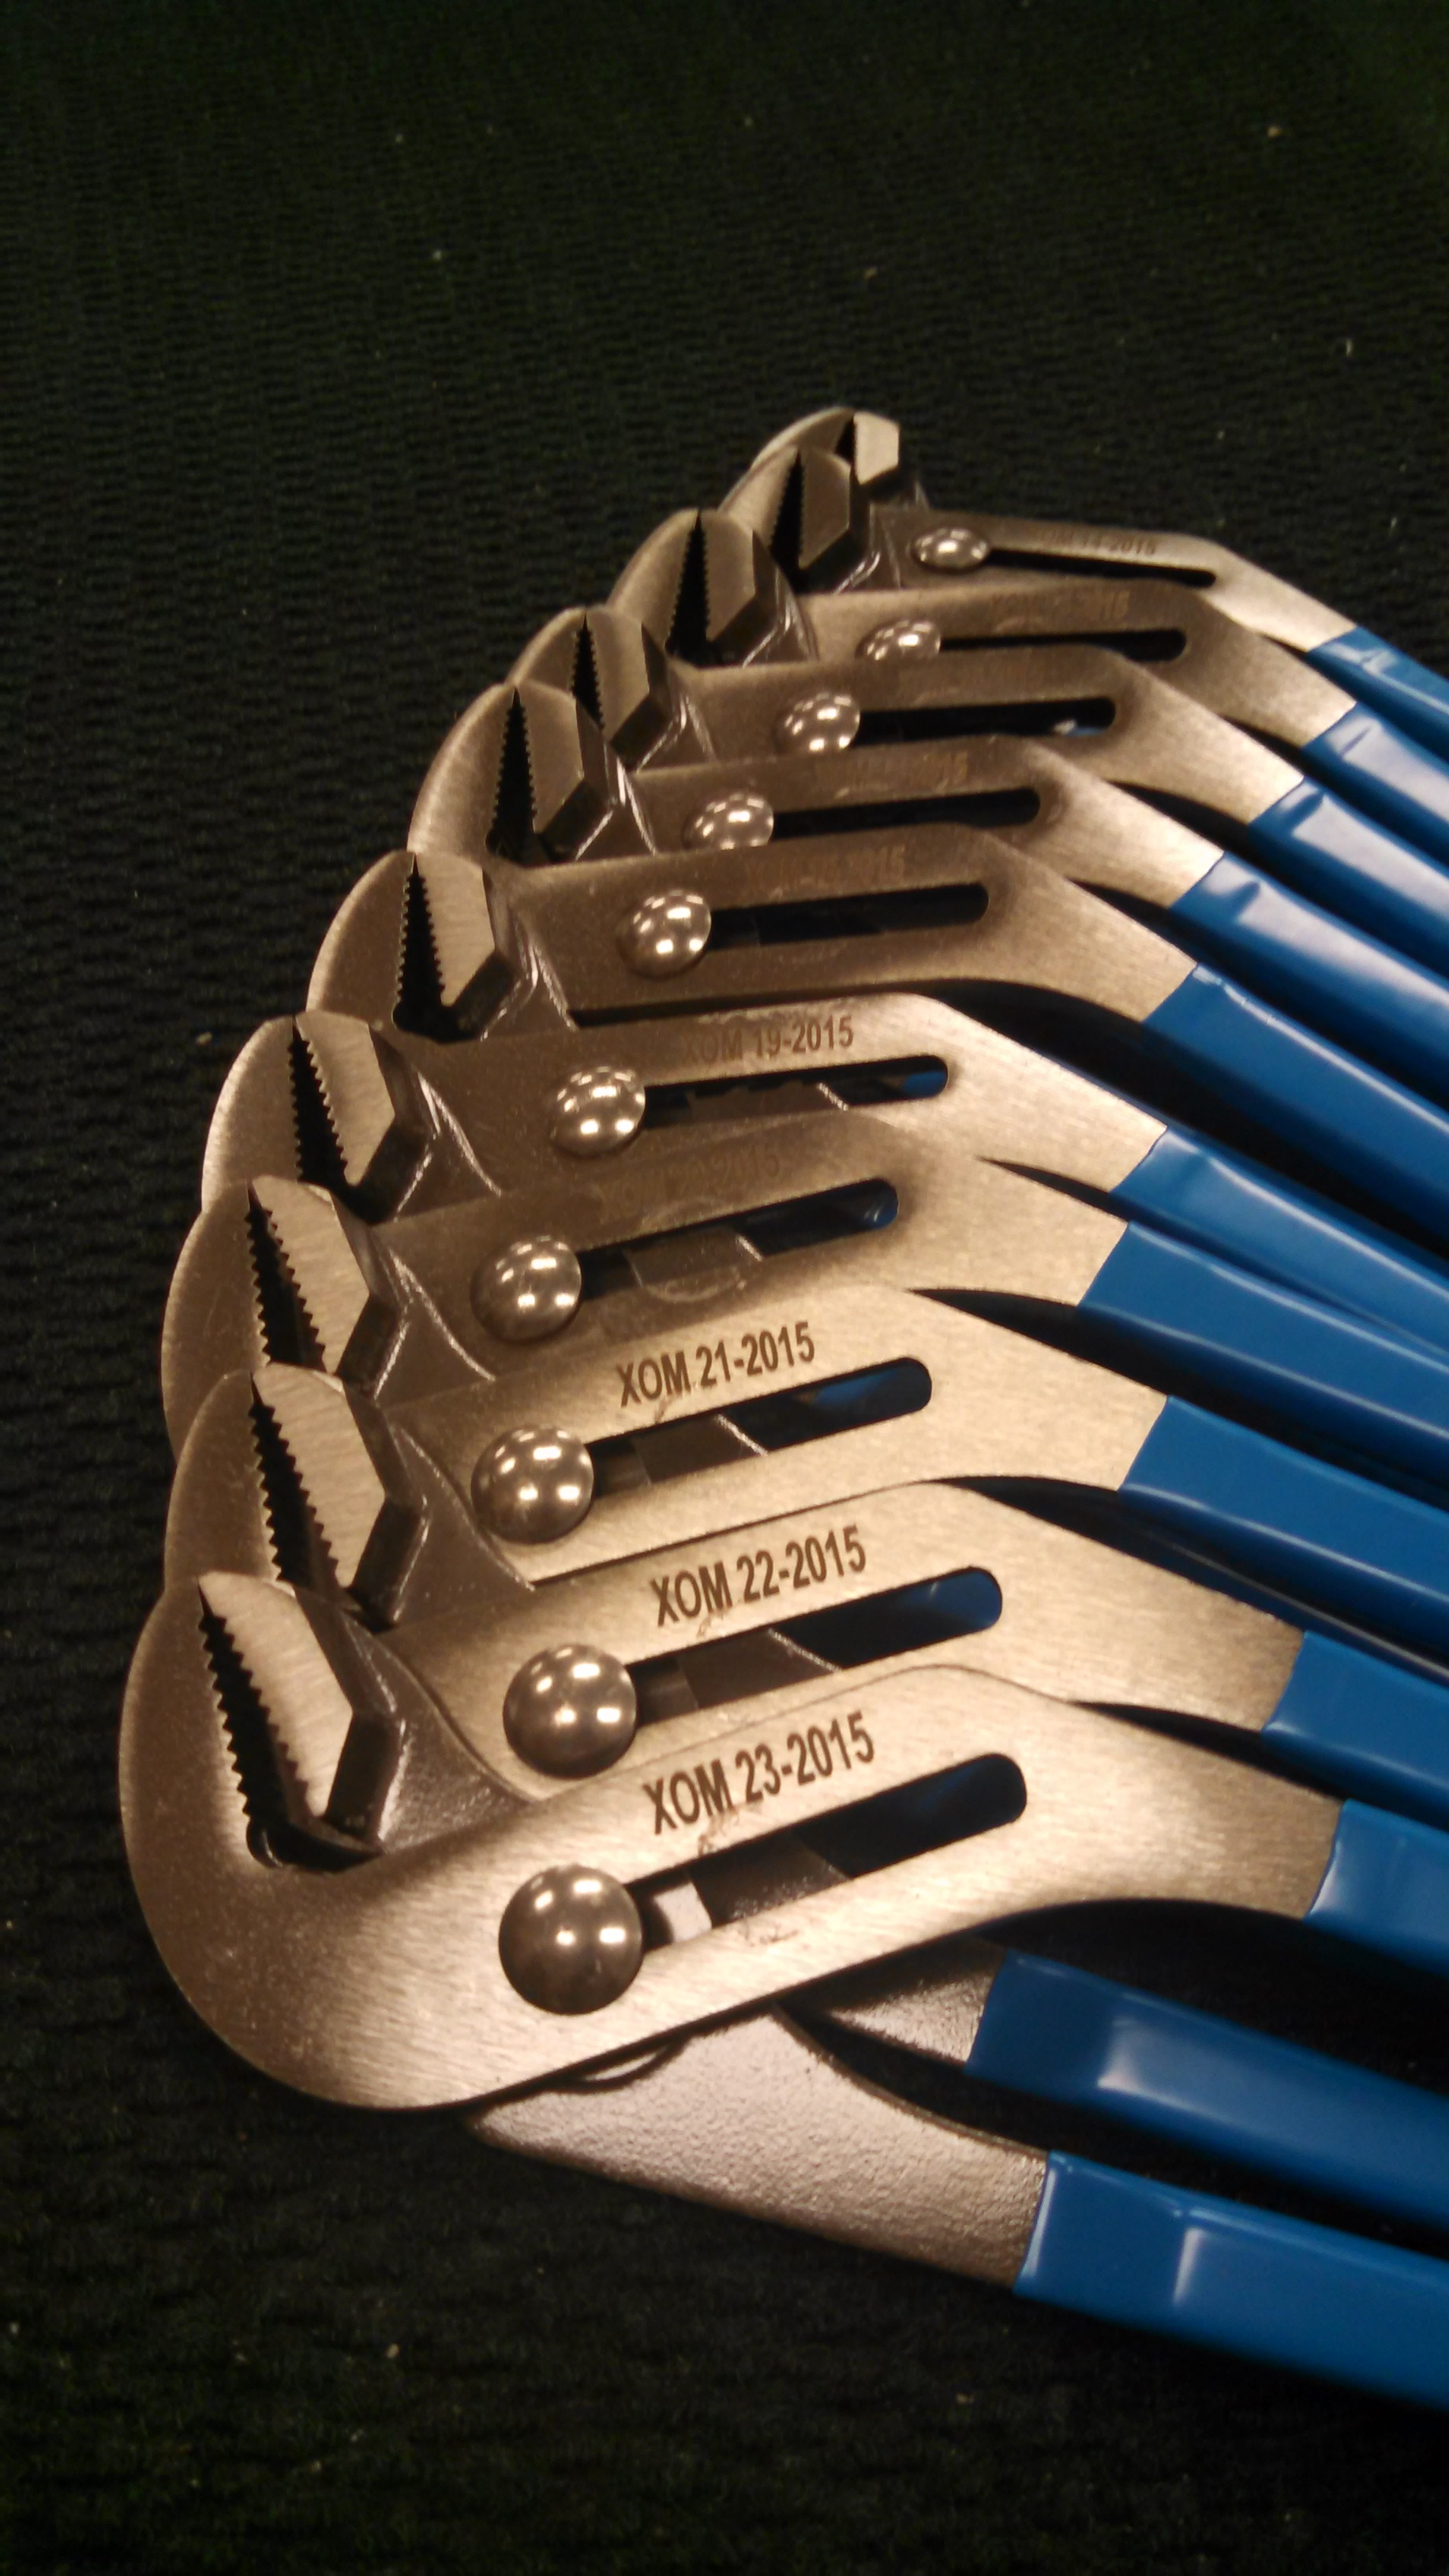 Industrial Engraving - Personalized Engraved Tools - Engrave It Houston